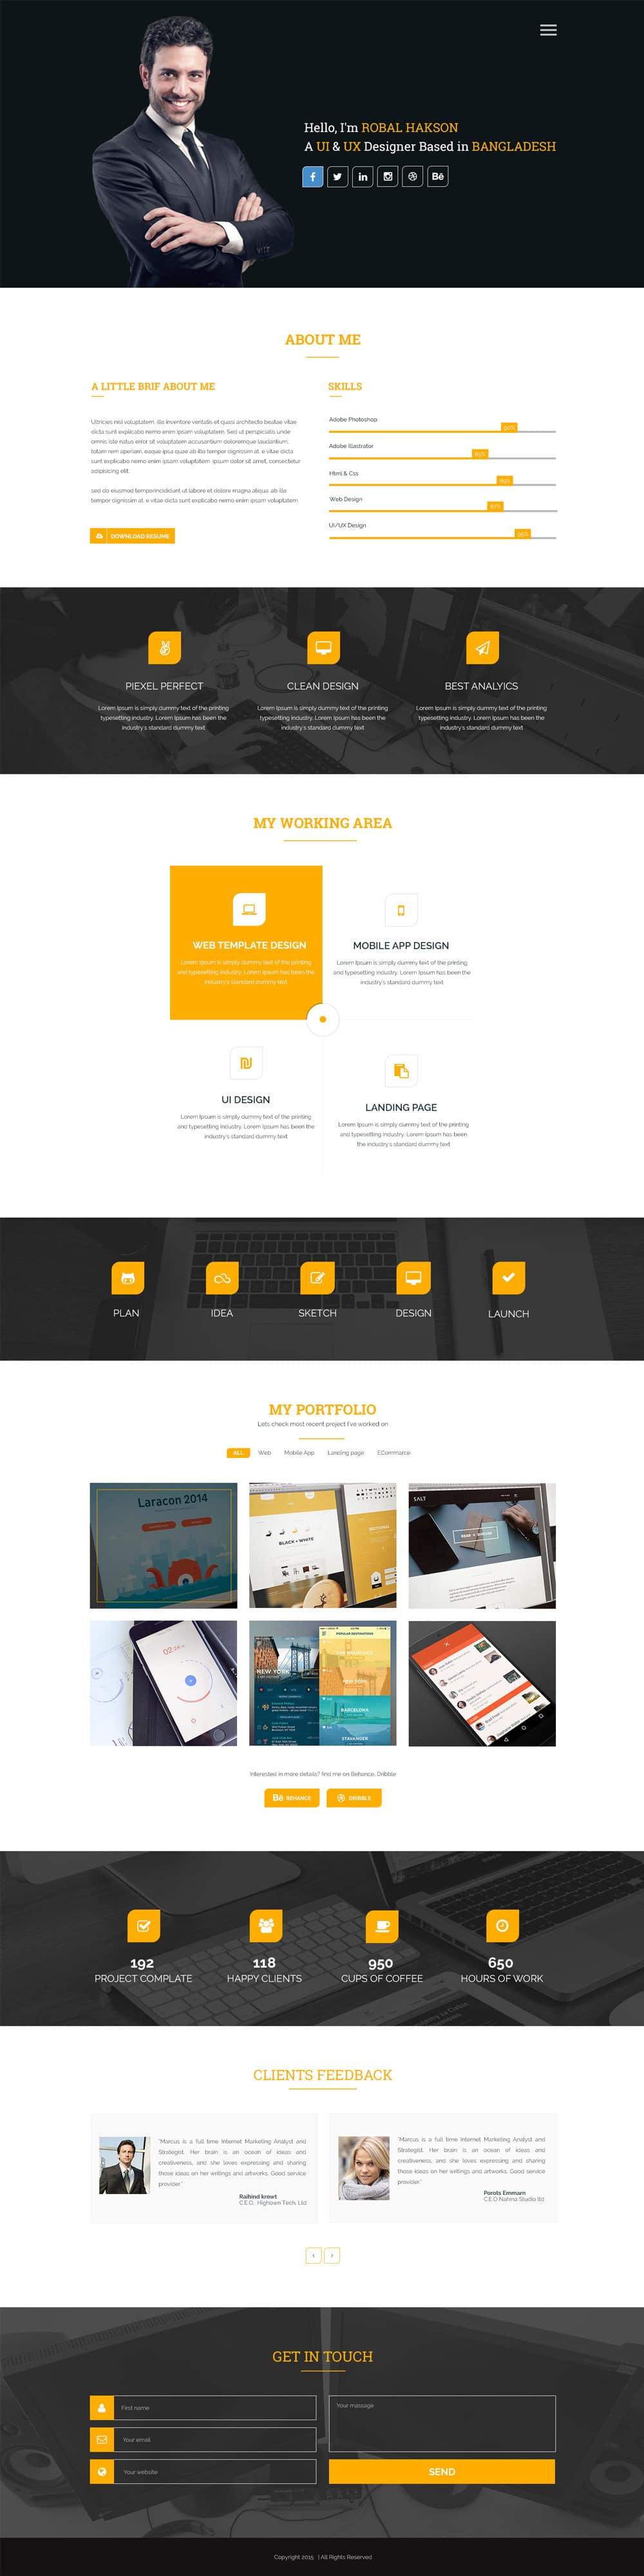 personal website template free download